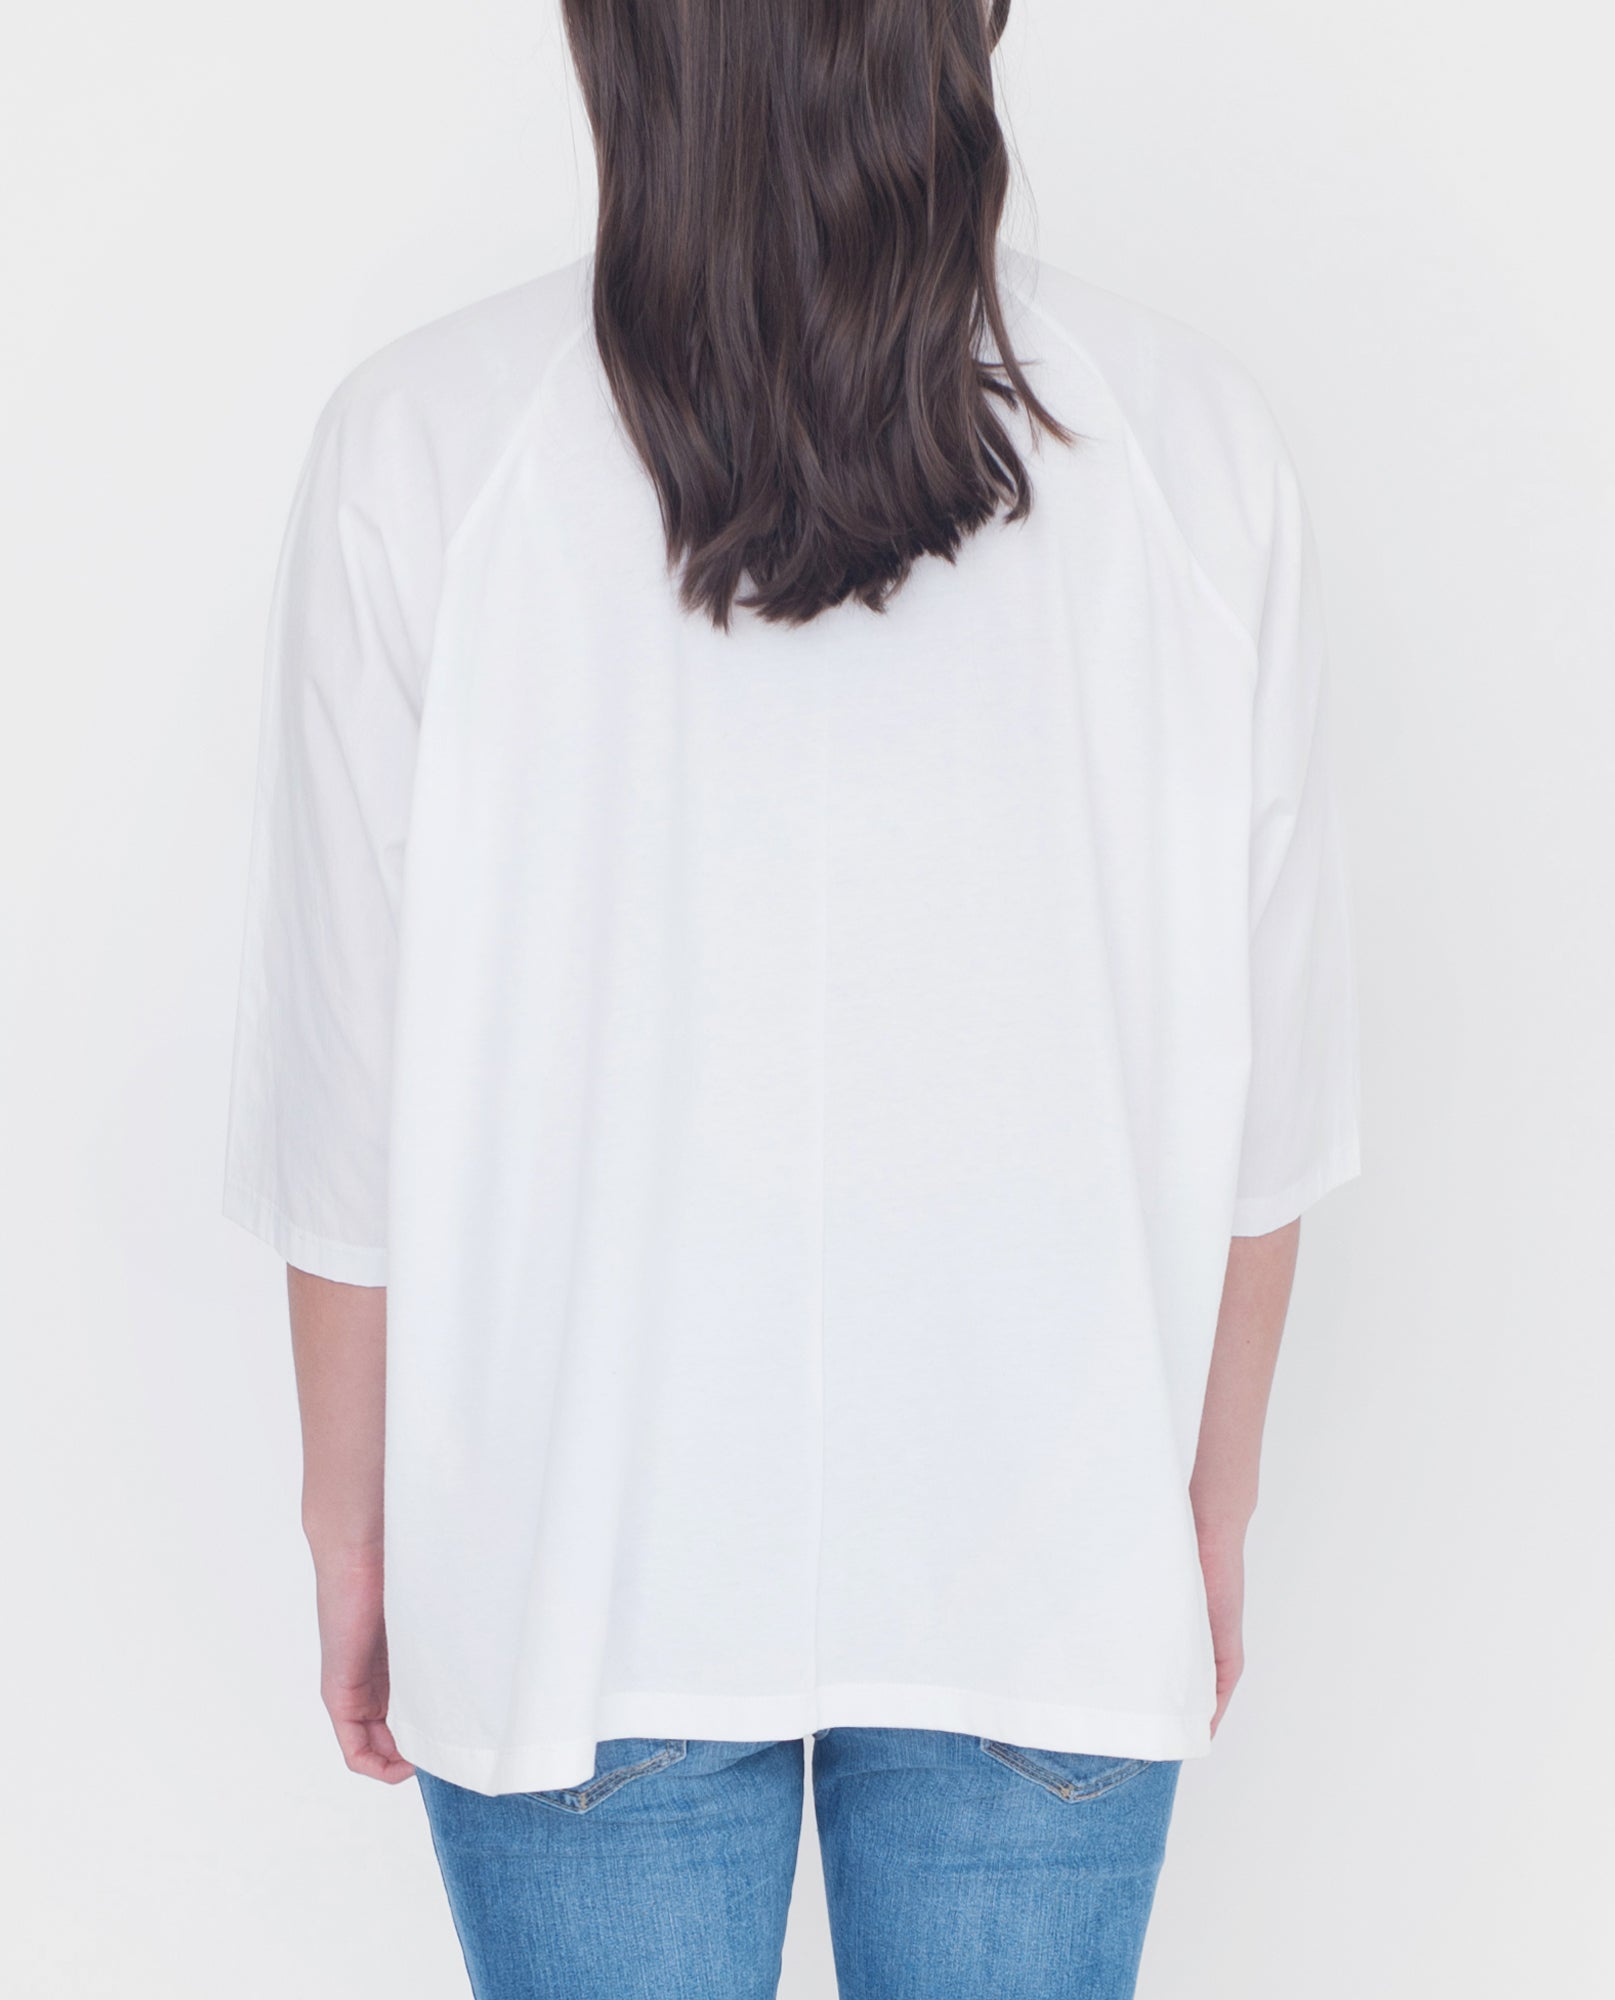 TERRY Organic Cotton Shirt In White